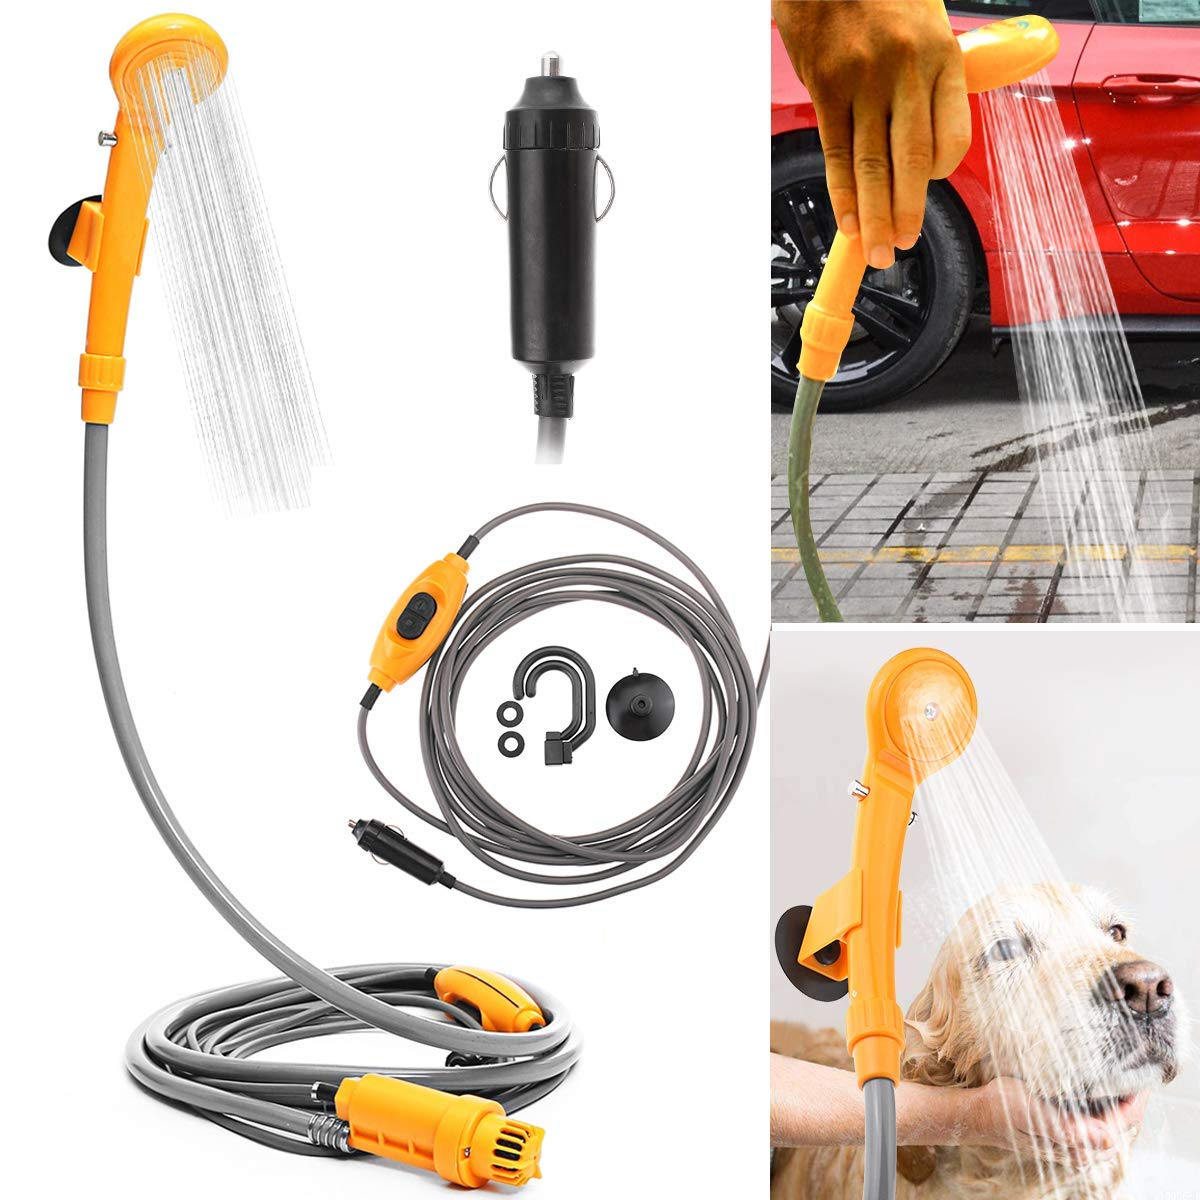 Outdoor Shower Kit, MASO 12V Portable Camping Shower with Water Pump, 5 Meter Cable With Cigarette Lighter Plug, Max 7L Water Per Minute for Champing Pet Bath Car Washing Personal Shower